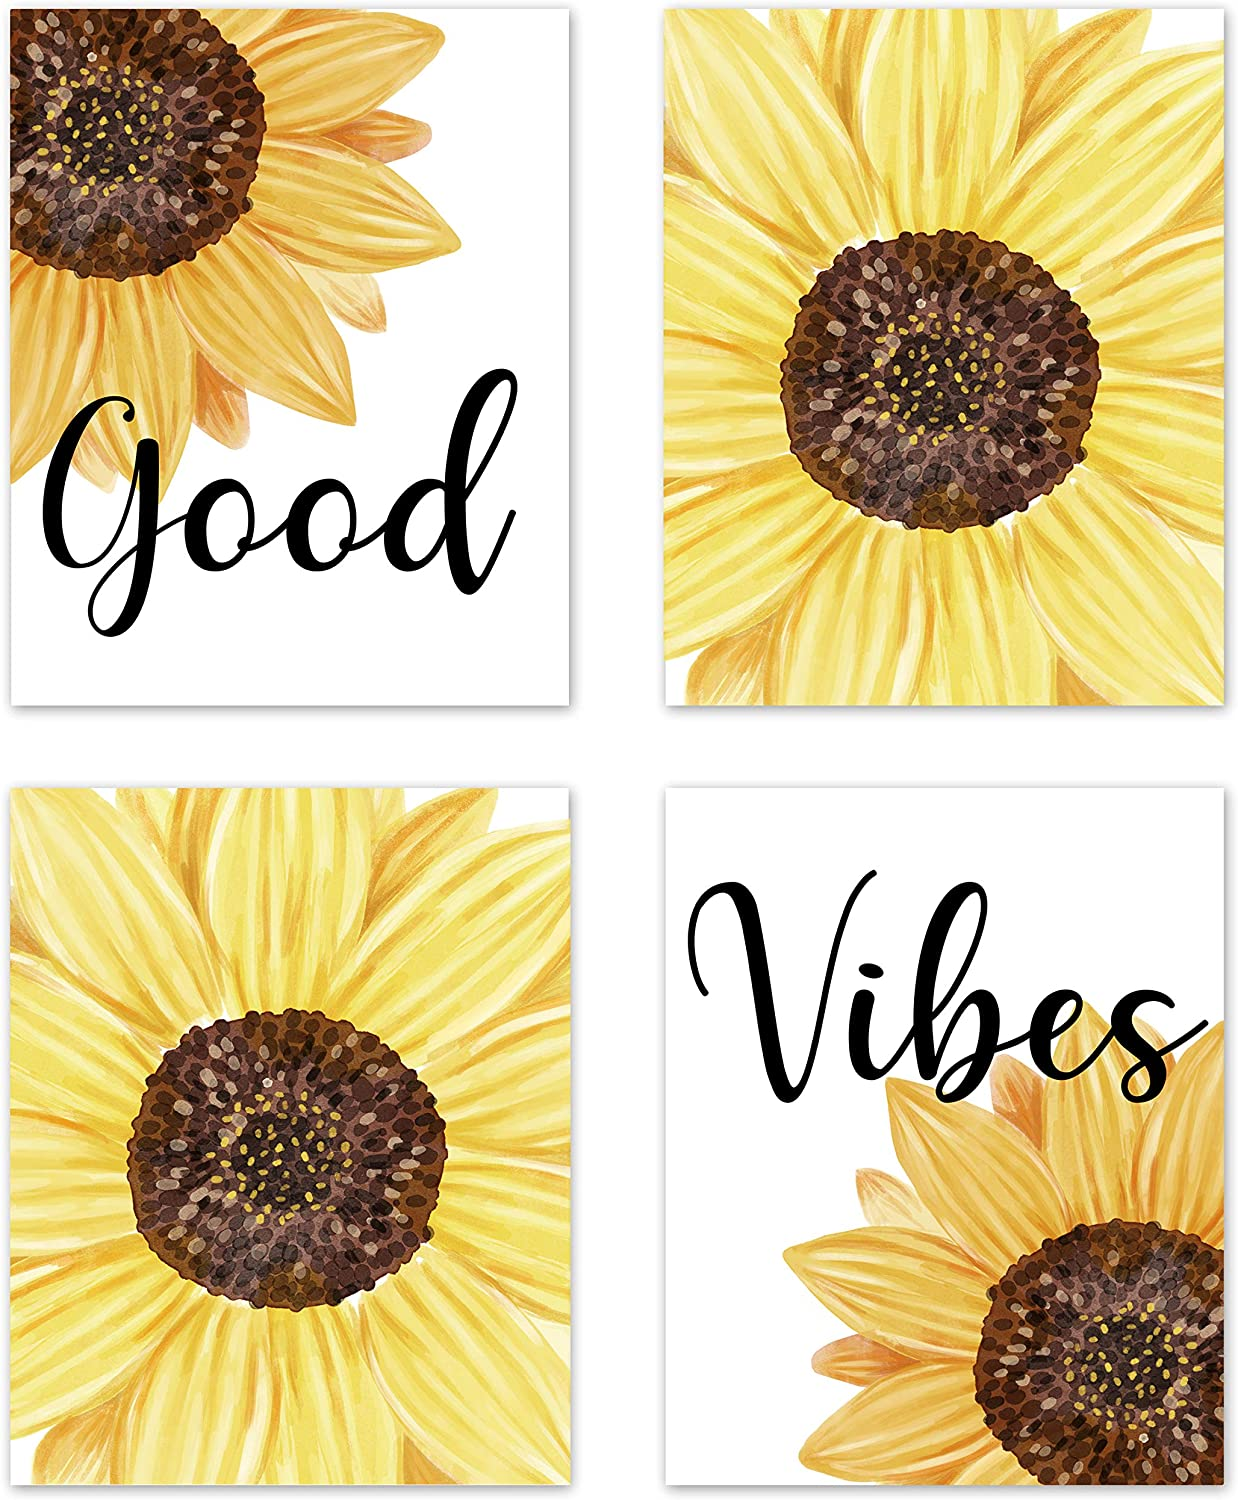 Farmhouse Good Vibes Yellow Sunflower Inspirational Sayings Rustic Wall Art Posters Home Room Decor Flower Boho Floral Pictures Prints Decorations Women Girls College Living Room Bedroom Bathroom